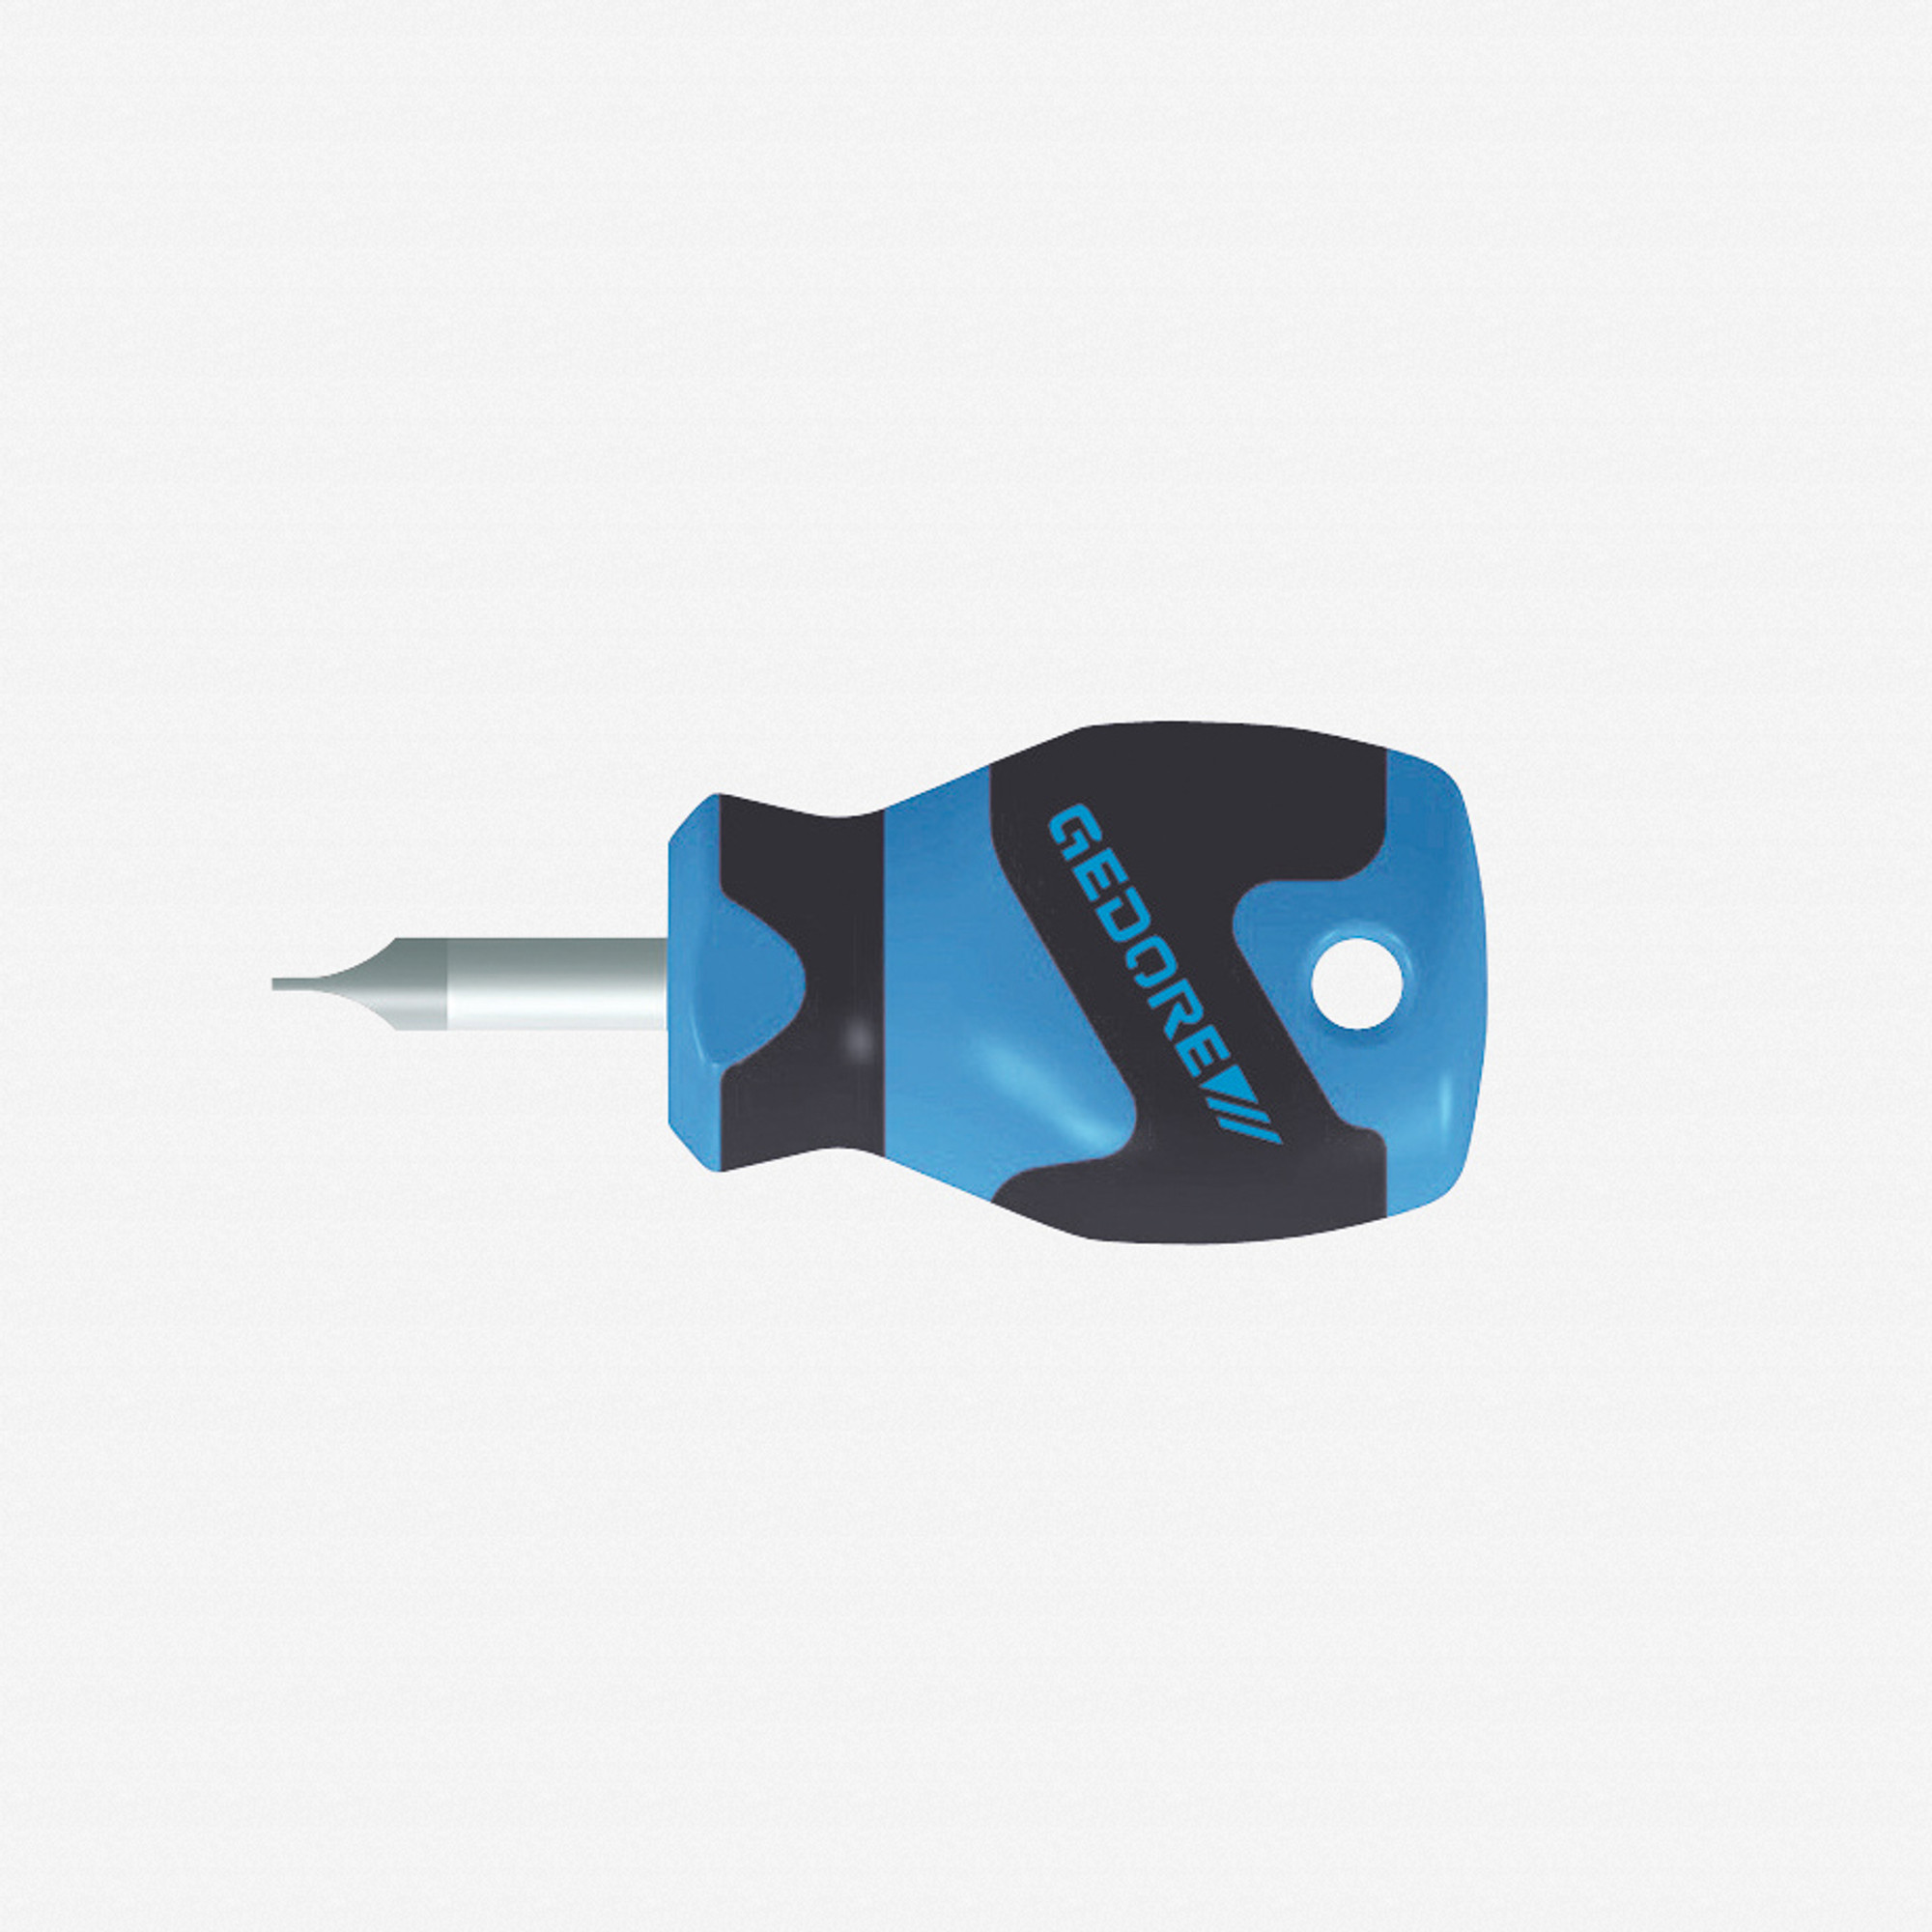 GEDORE 2154SK 8 3C-Screwdriver with Striking Cap 8 mm